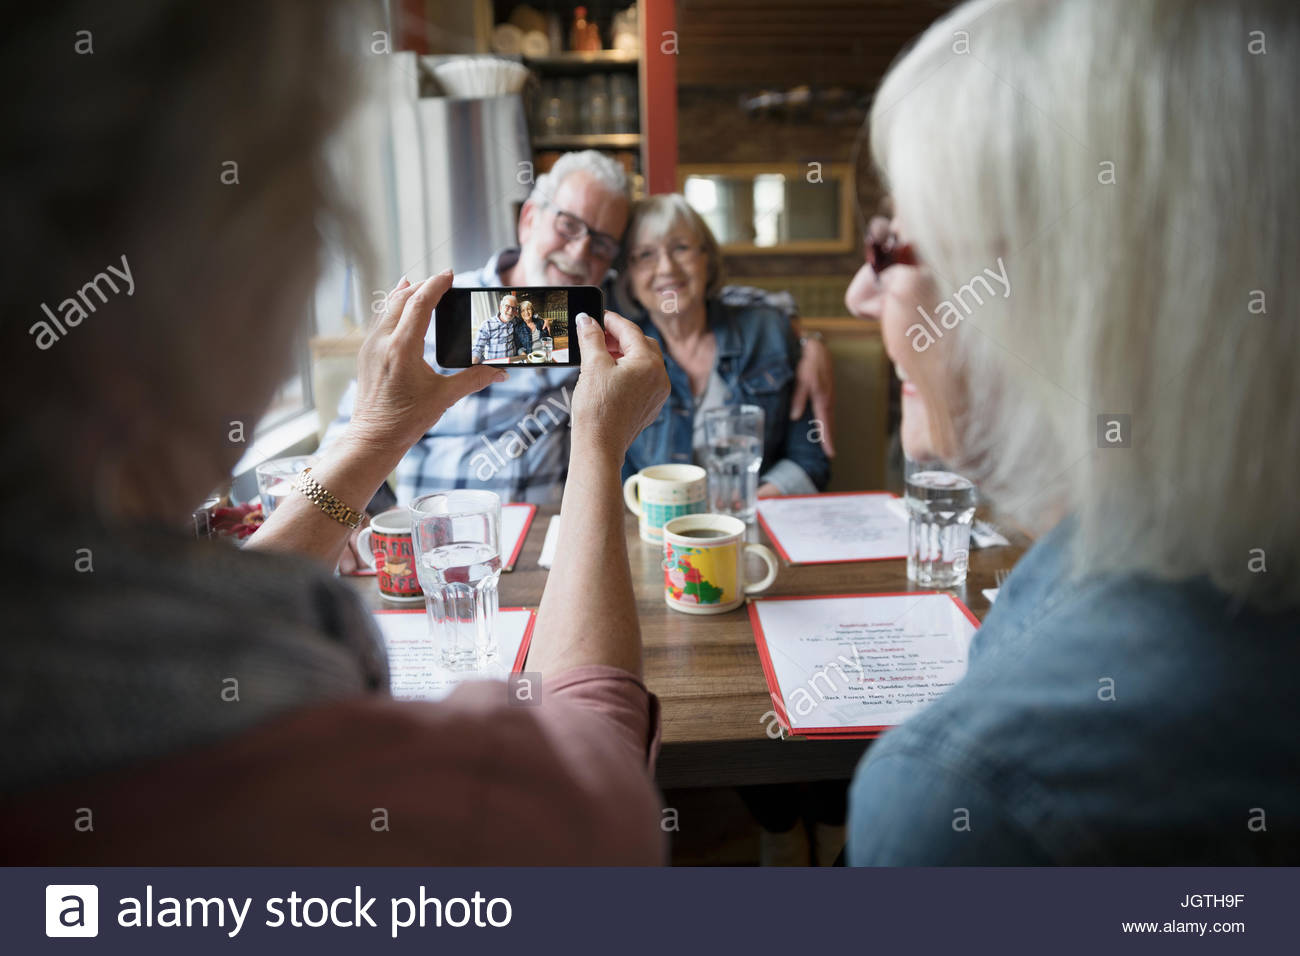 Senior woman photographing senior couple with camera phone in diner booth - Stock Image